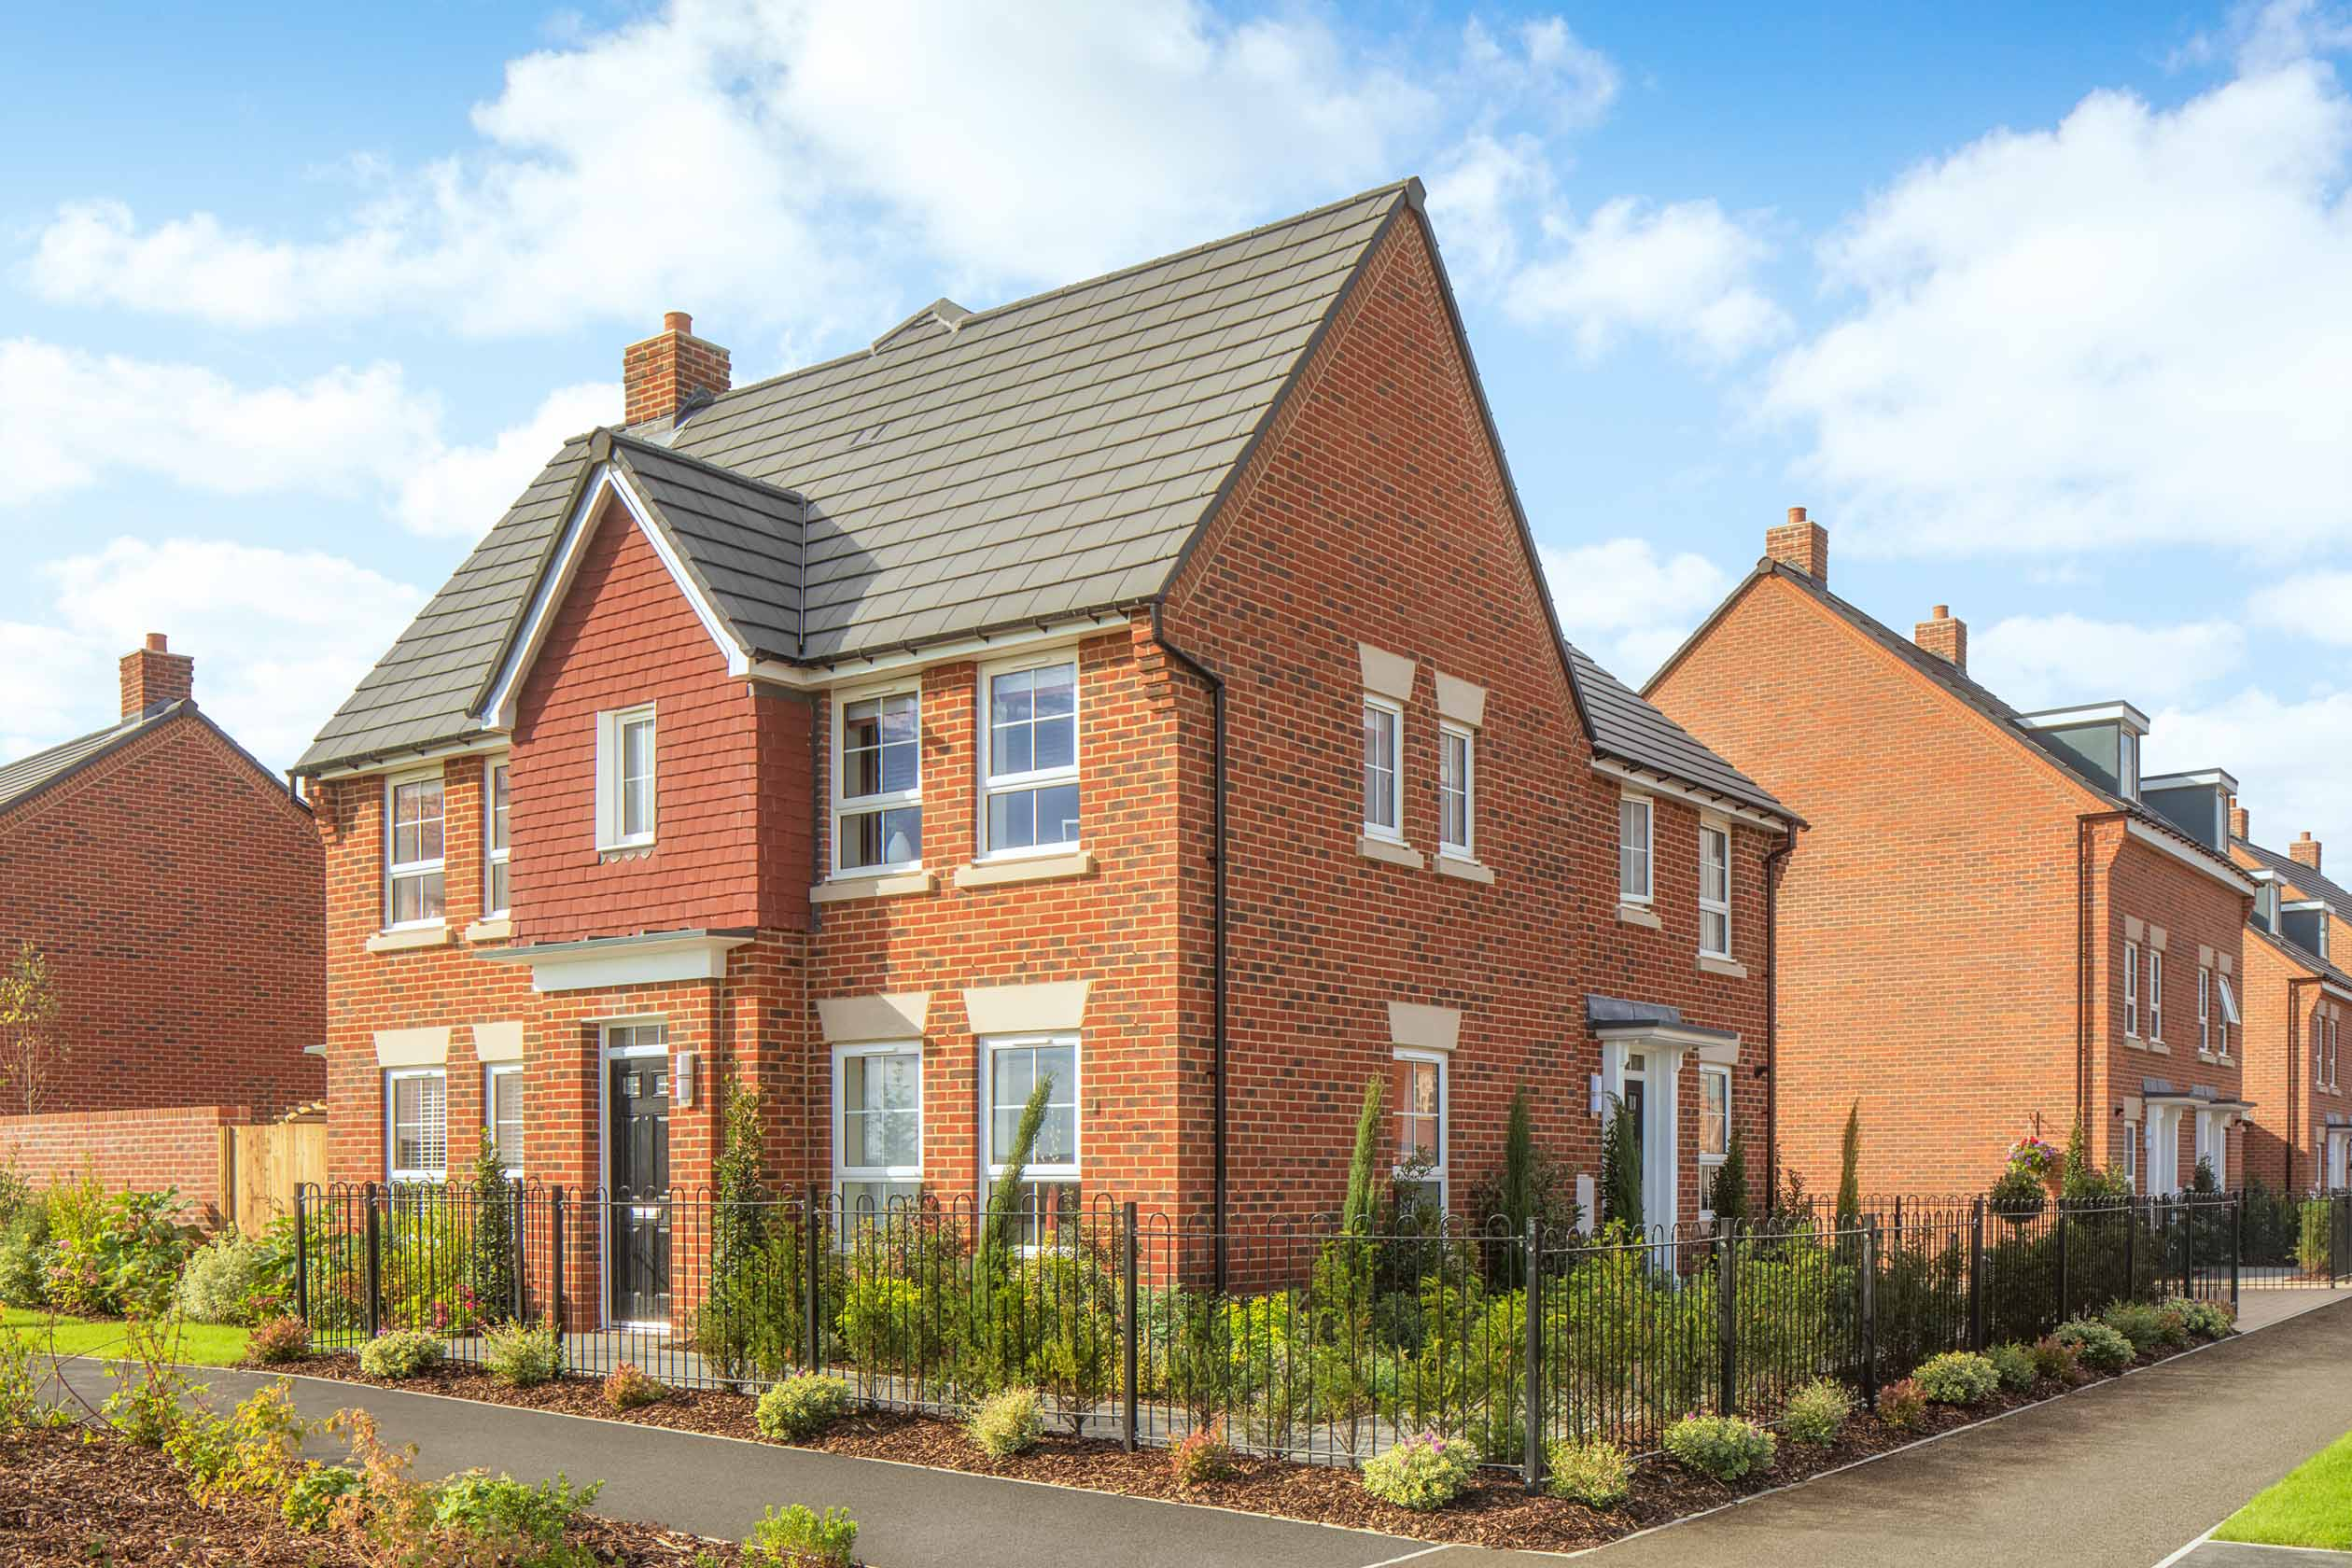 External Morpeth show home, Orchard Green, Kingsbrook, Aylesbury